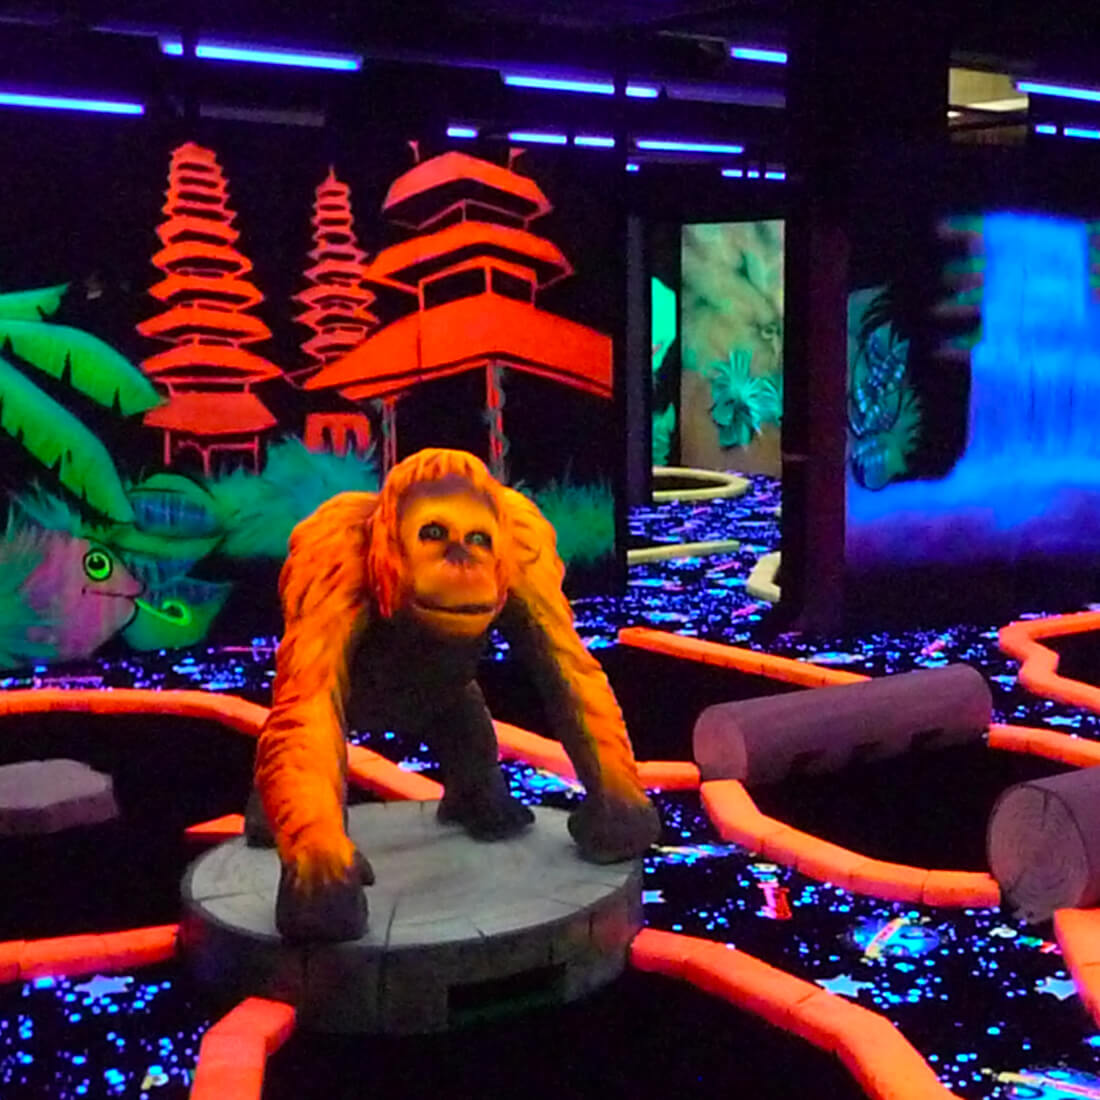 Glowyland mini-golf